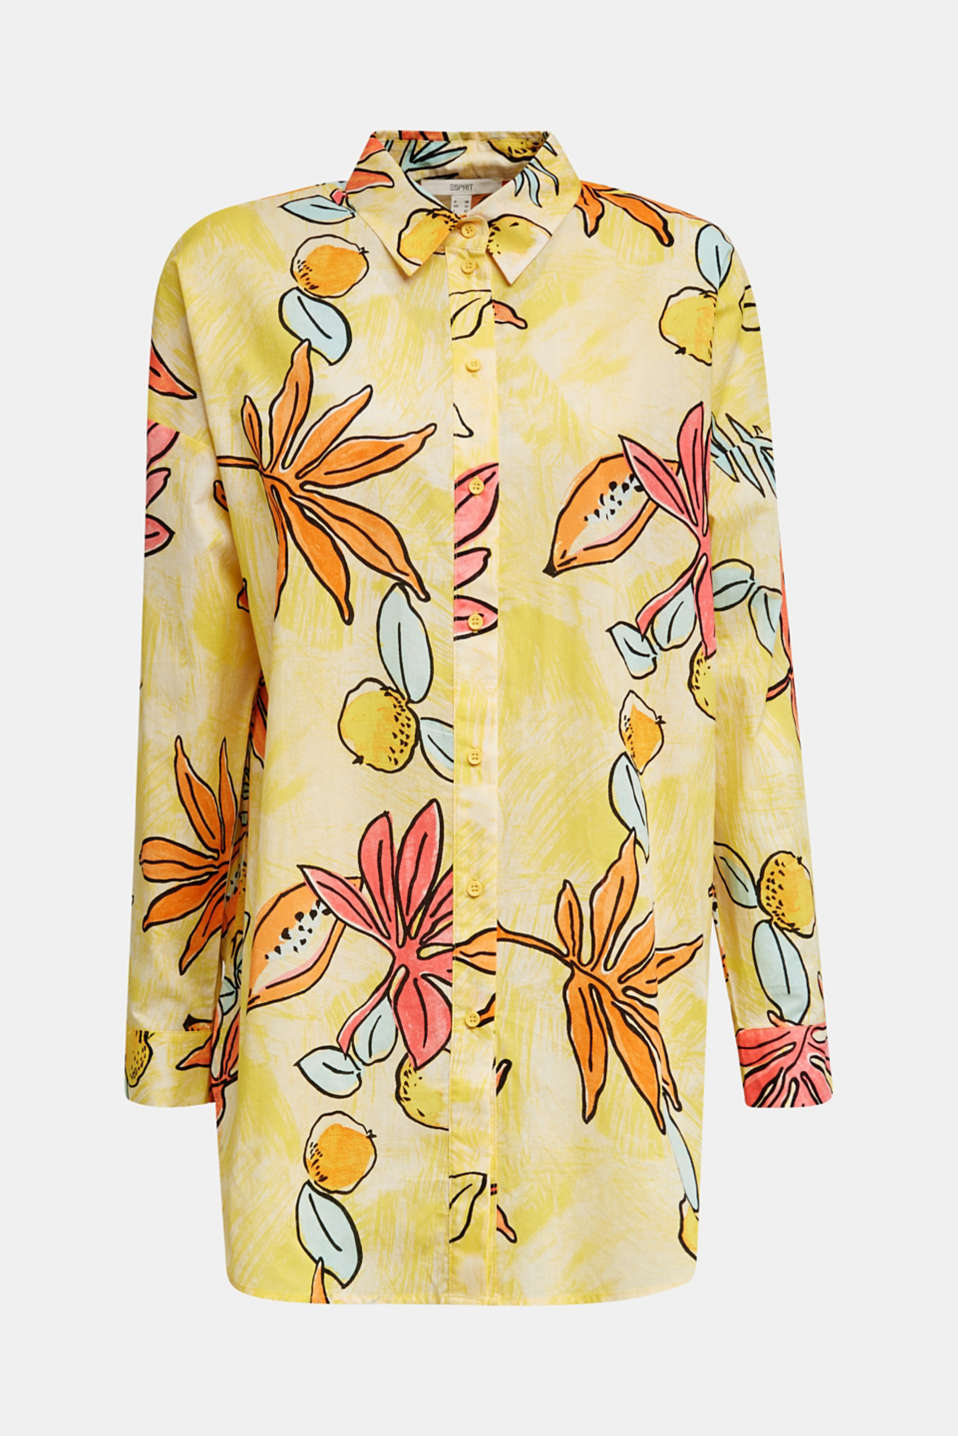 Longbluse mit Print, 100% Baumwolle, BRIGHT YELLOW 4, detail image number 7